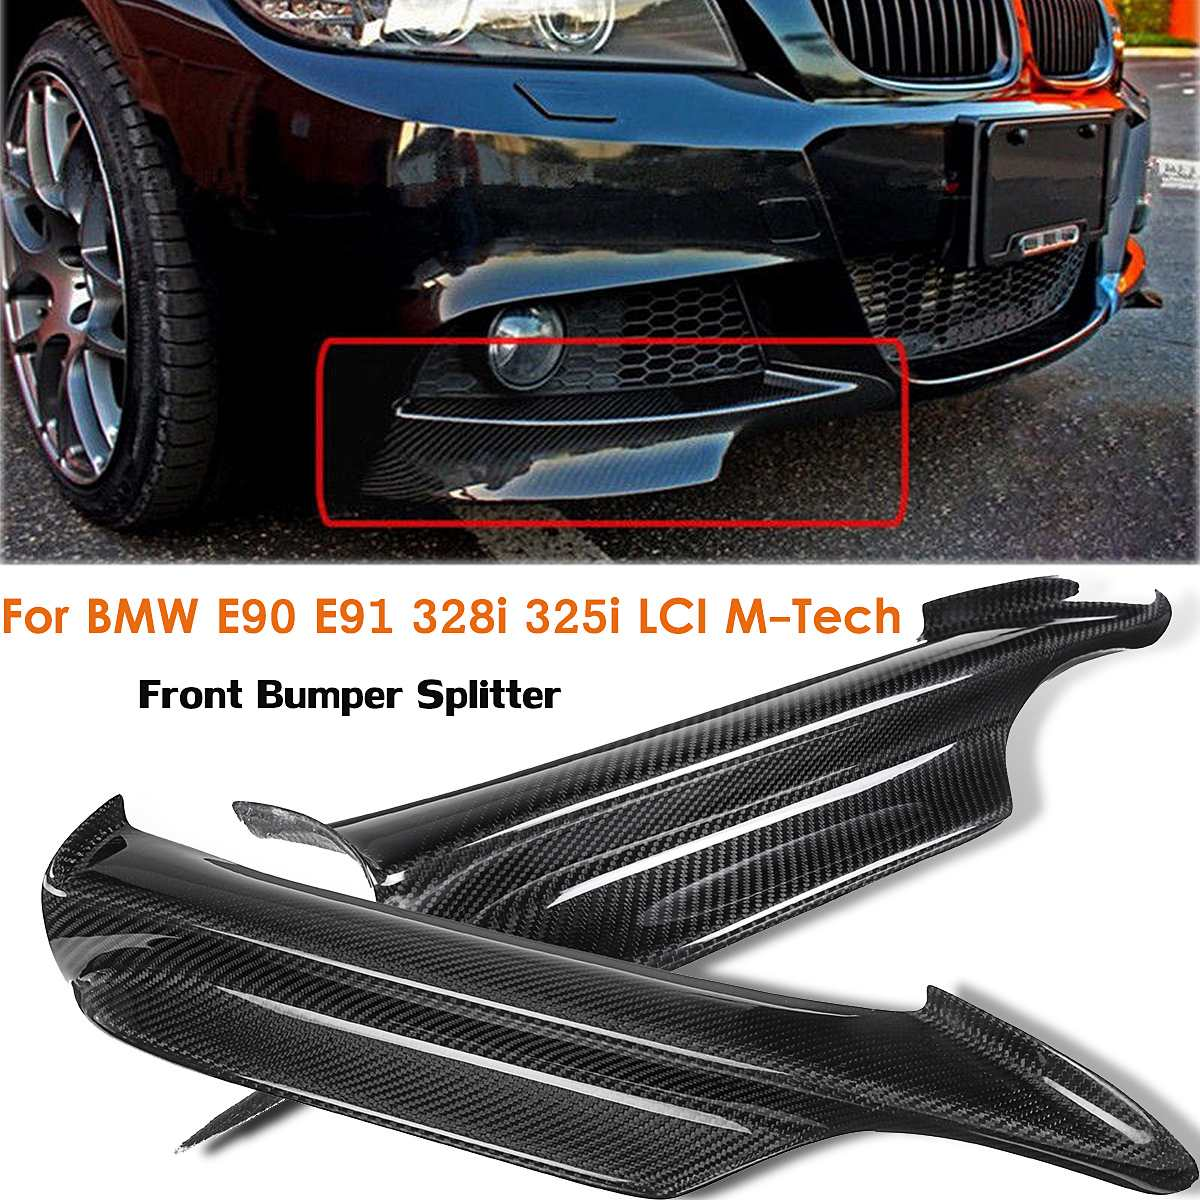 2Pcs Carbon Fiber Front Bumper Splitter Lip For BMW E90 E91 328i 325i LCI M-Tech 2005 2006 2007 20082Pcs Carbon Fiber Front Bumper Splitter Lip For BMW E90 E91 328i 325i LCI M-Tech 2005 2006 2007 2008